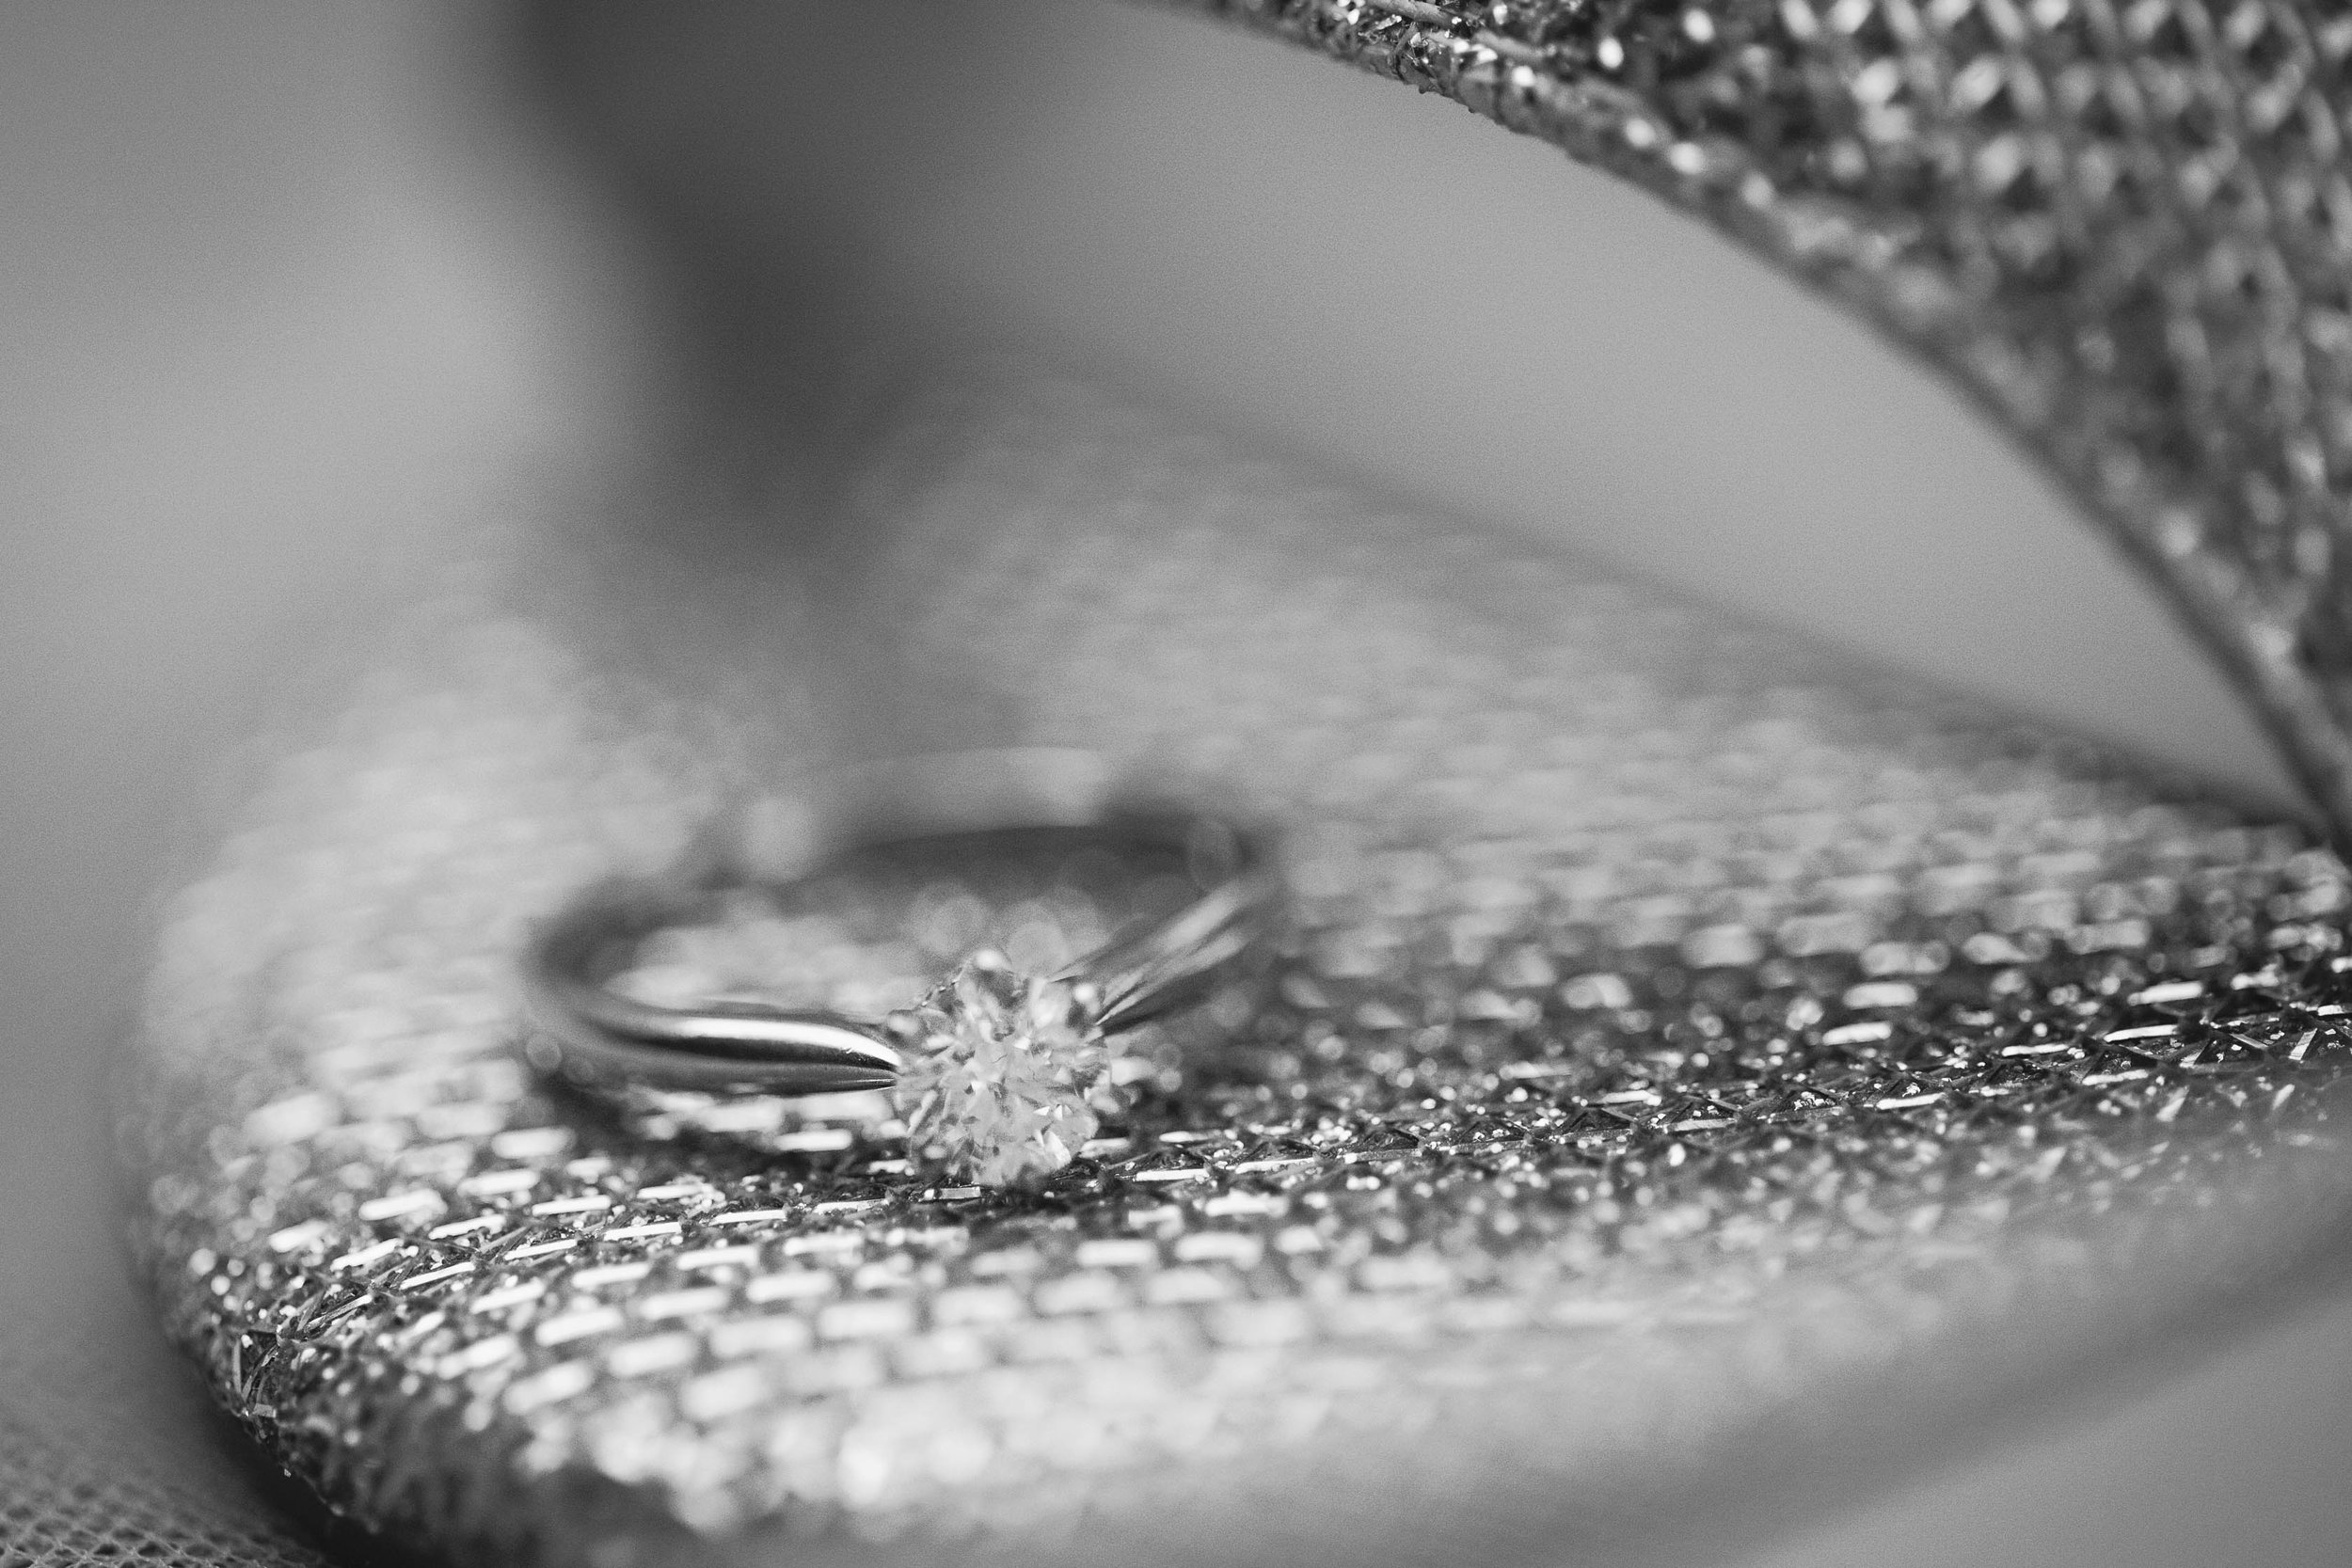 Engagement Ring Detail